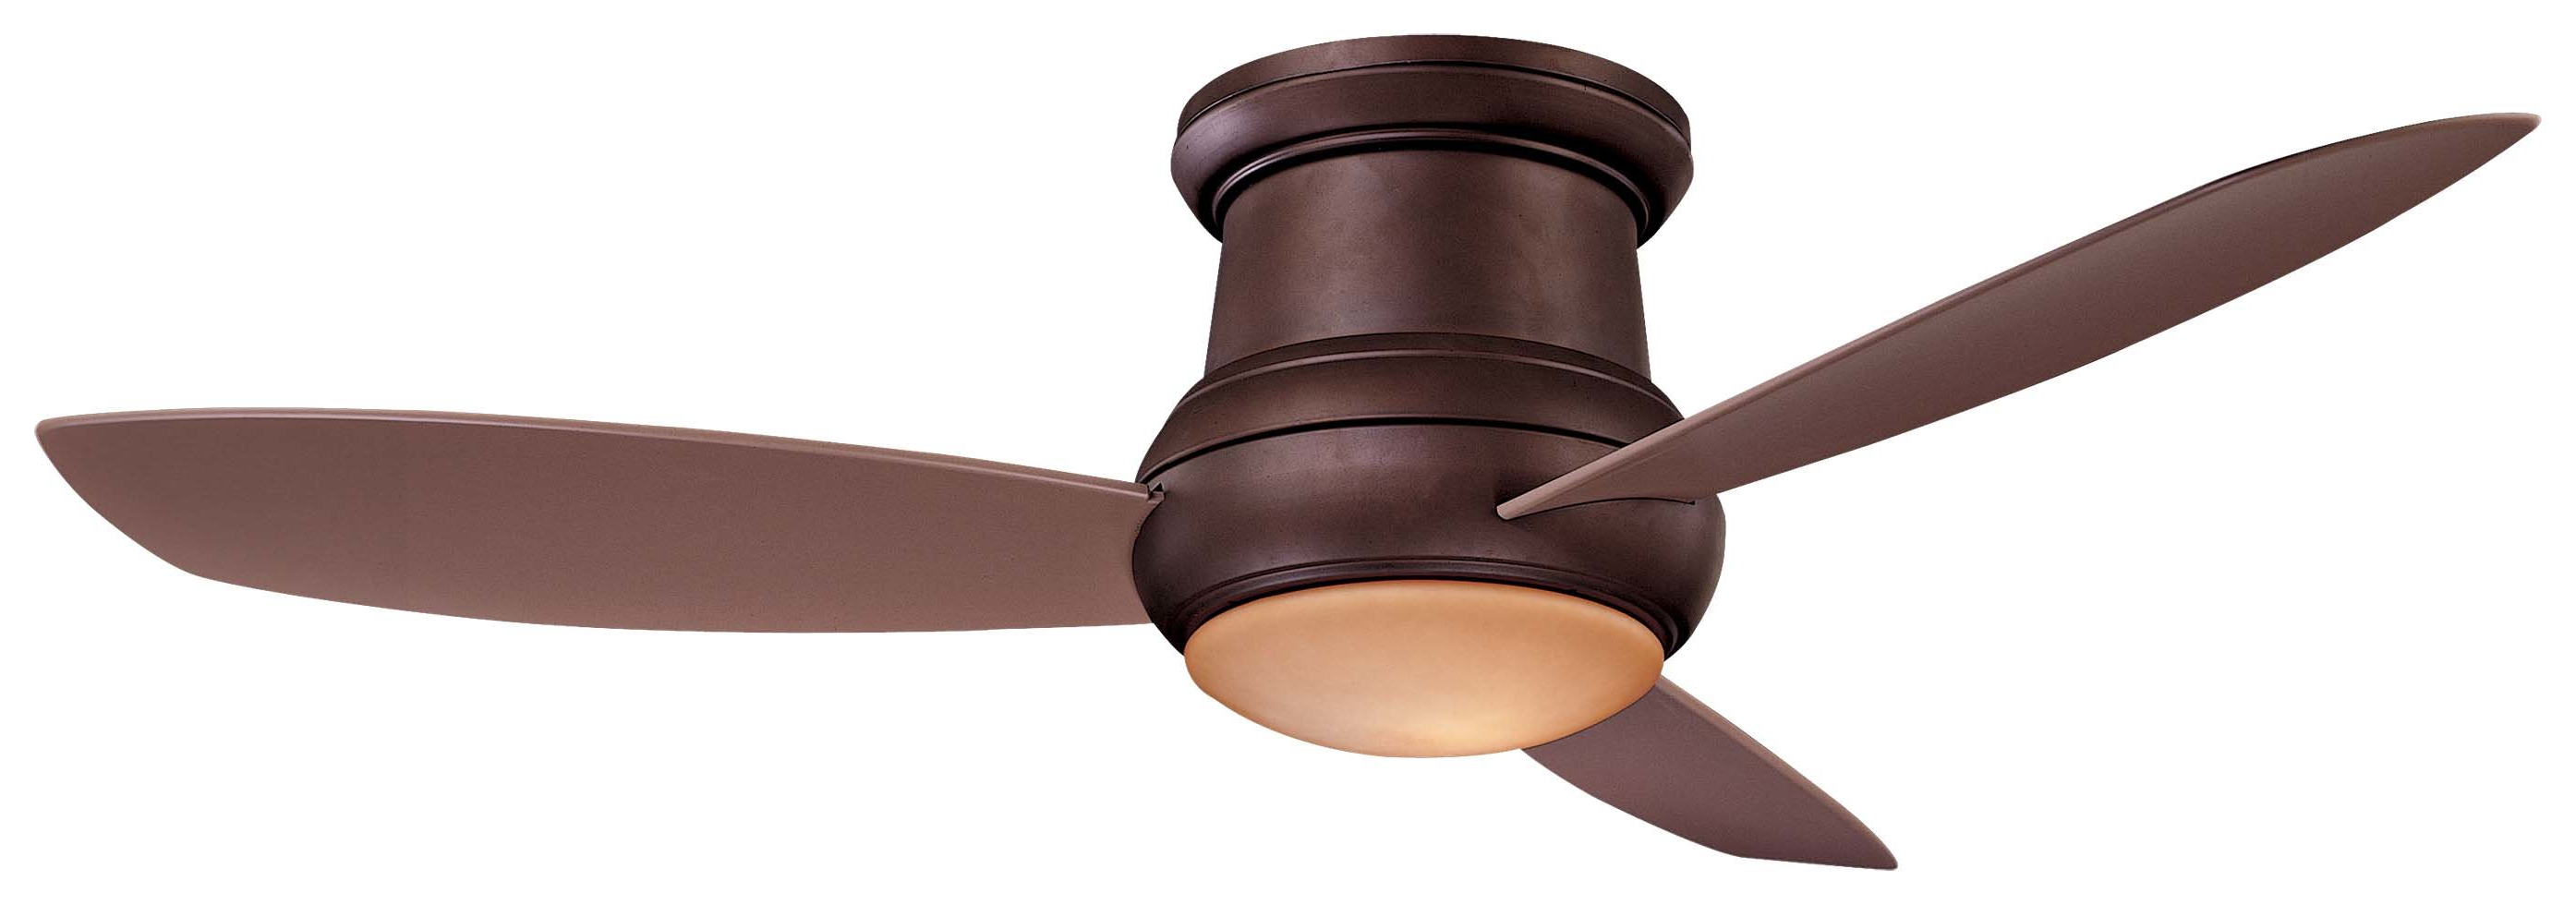 """Concept Ii 3 Blade Ceiling Fans Pertaining To Well Known 52"""" Concept Ii 3 Blade Outdoor Led Ceiling Fan (View 6 of 20)"""